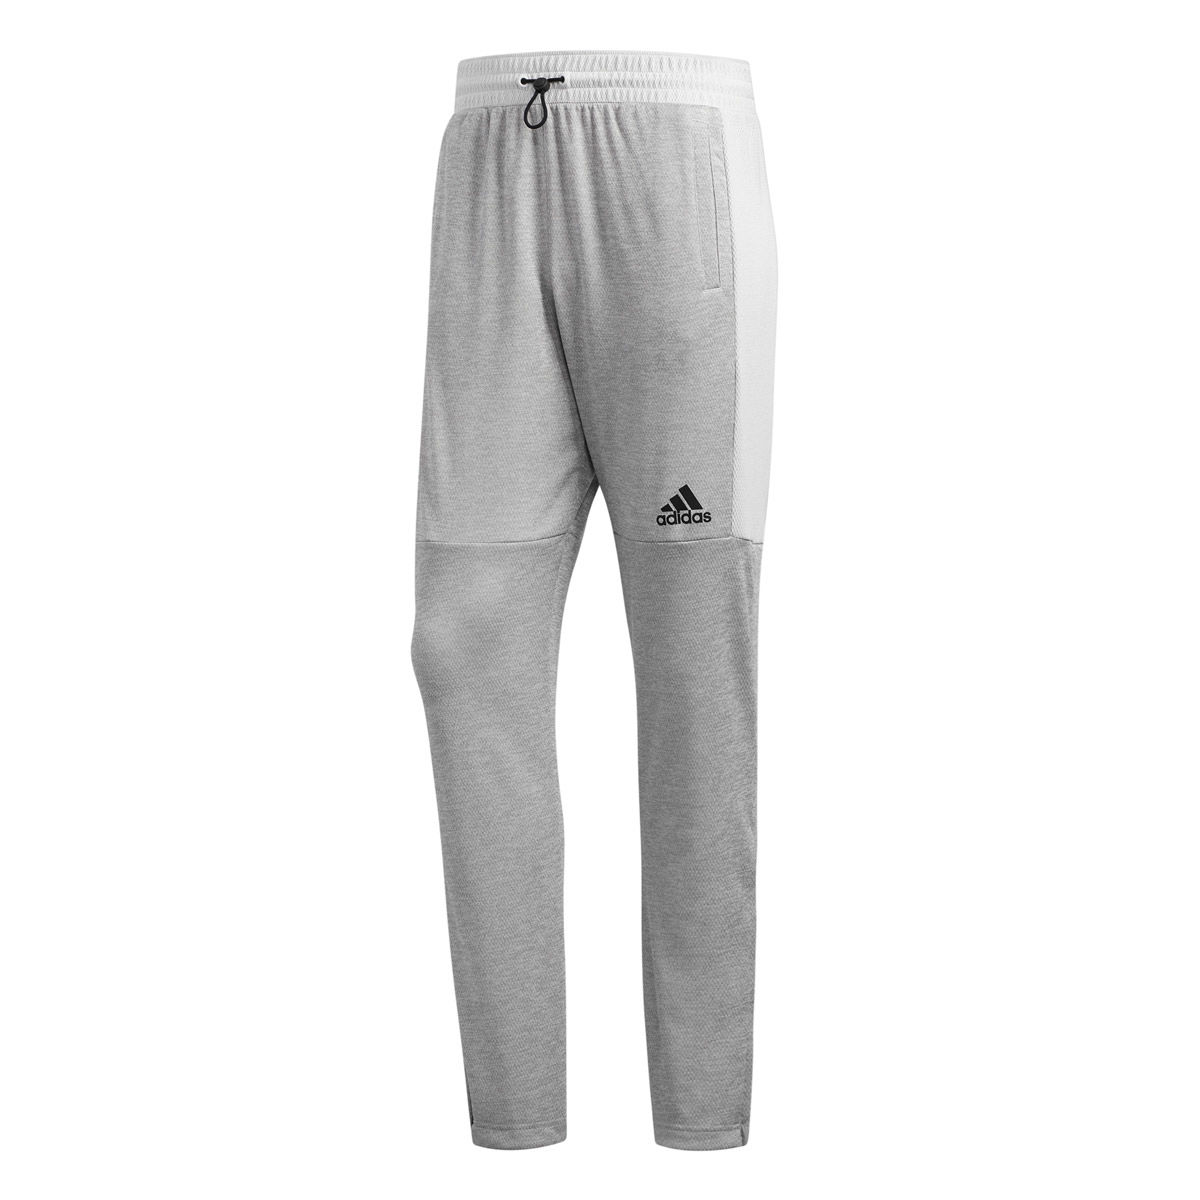 adidas Team Issue Lite Mens Pant